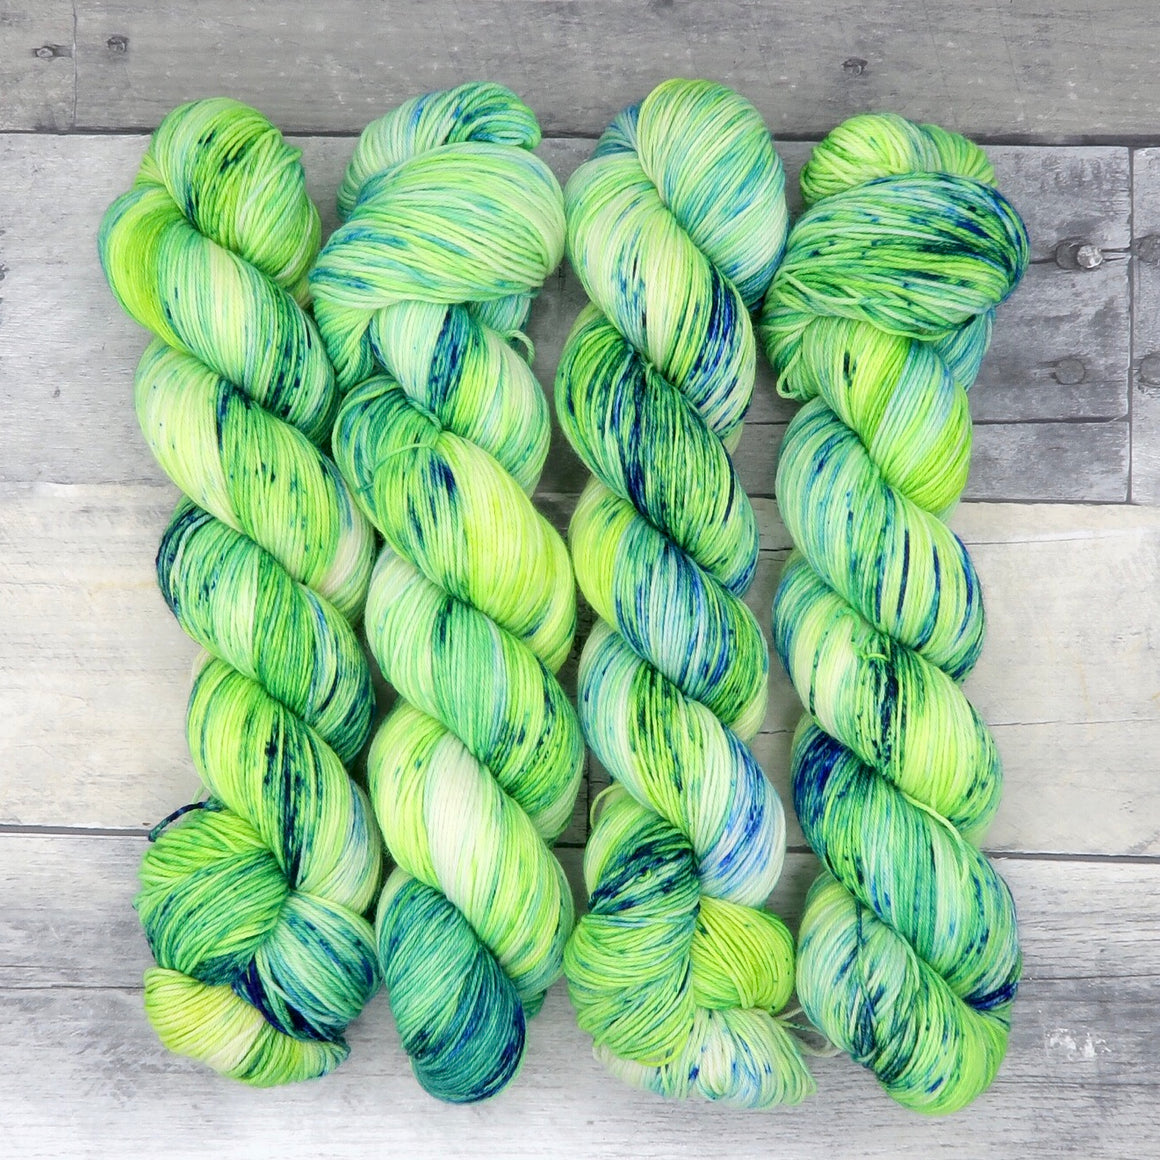 Sour Apple - (Everyday Sock, variegated/speckled) - vibrant and fluorescent green-yellow